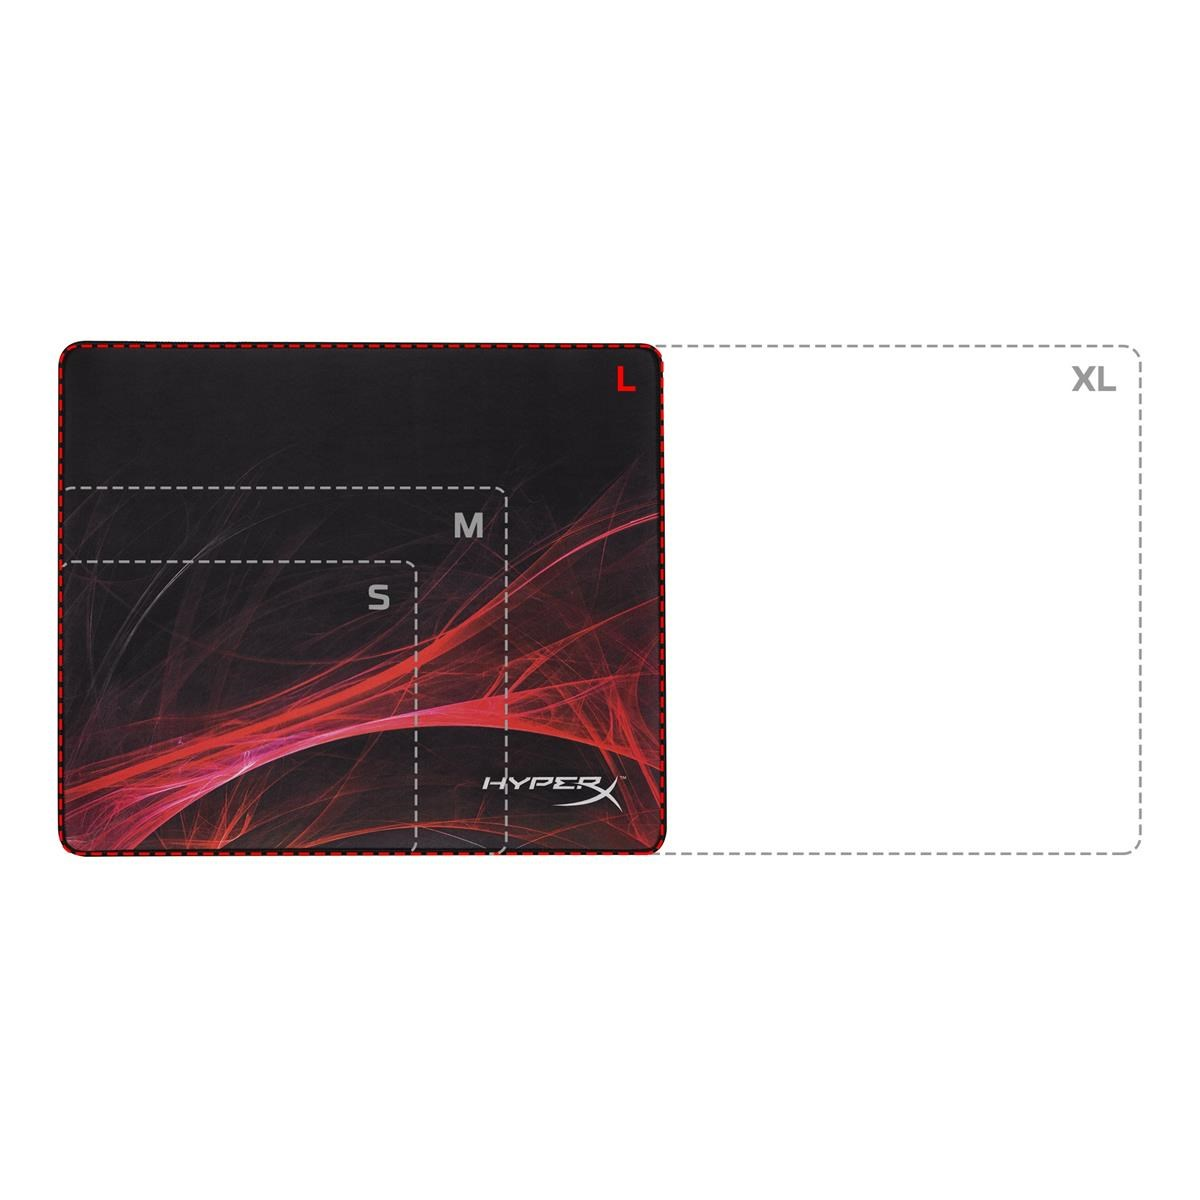 ffc632a3bb1 HyperX Fury S Pro Gaming Mouse Pad Speed Edition (X-Large) - HX-MPFS ...